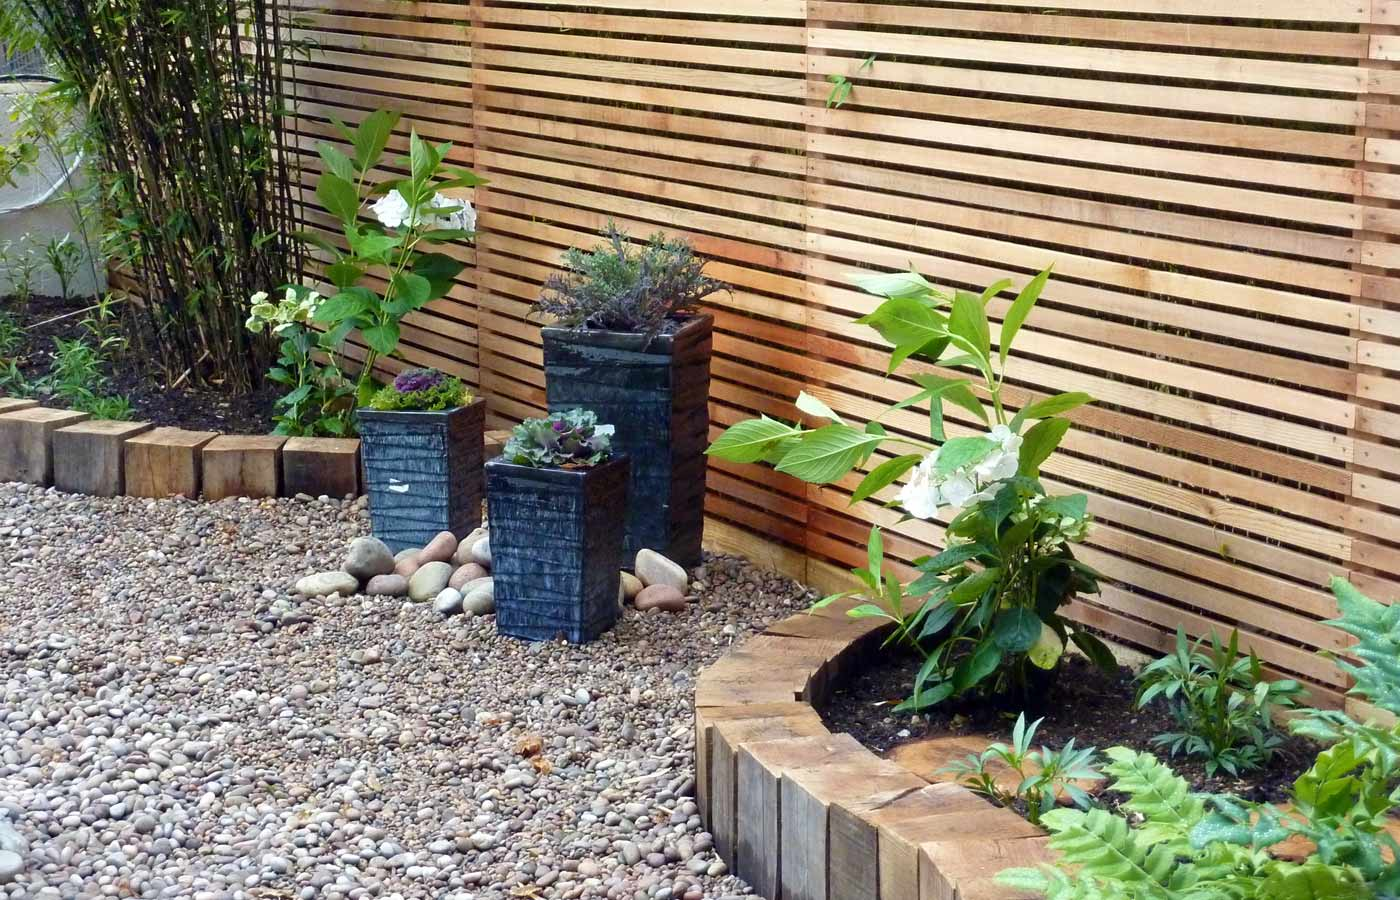 Rugged planters create an accent between planting areas